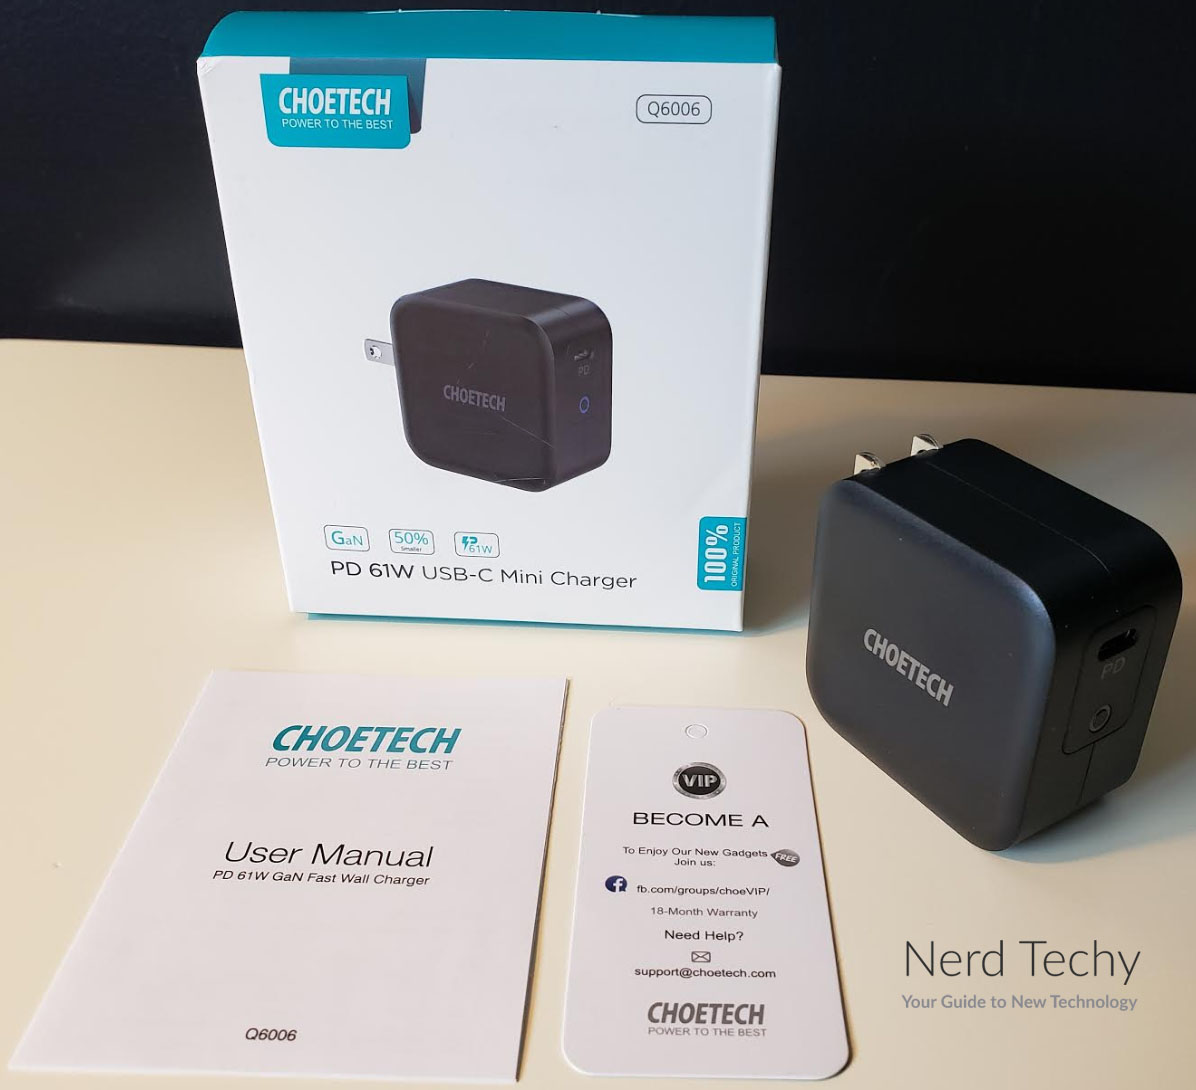 CHOETECH 61W USB-C Charger